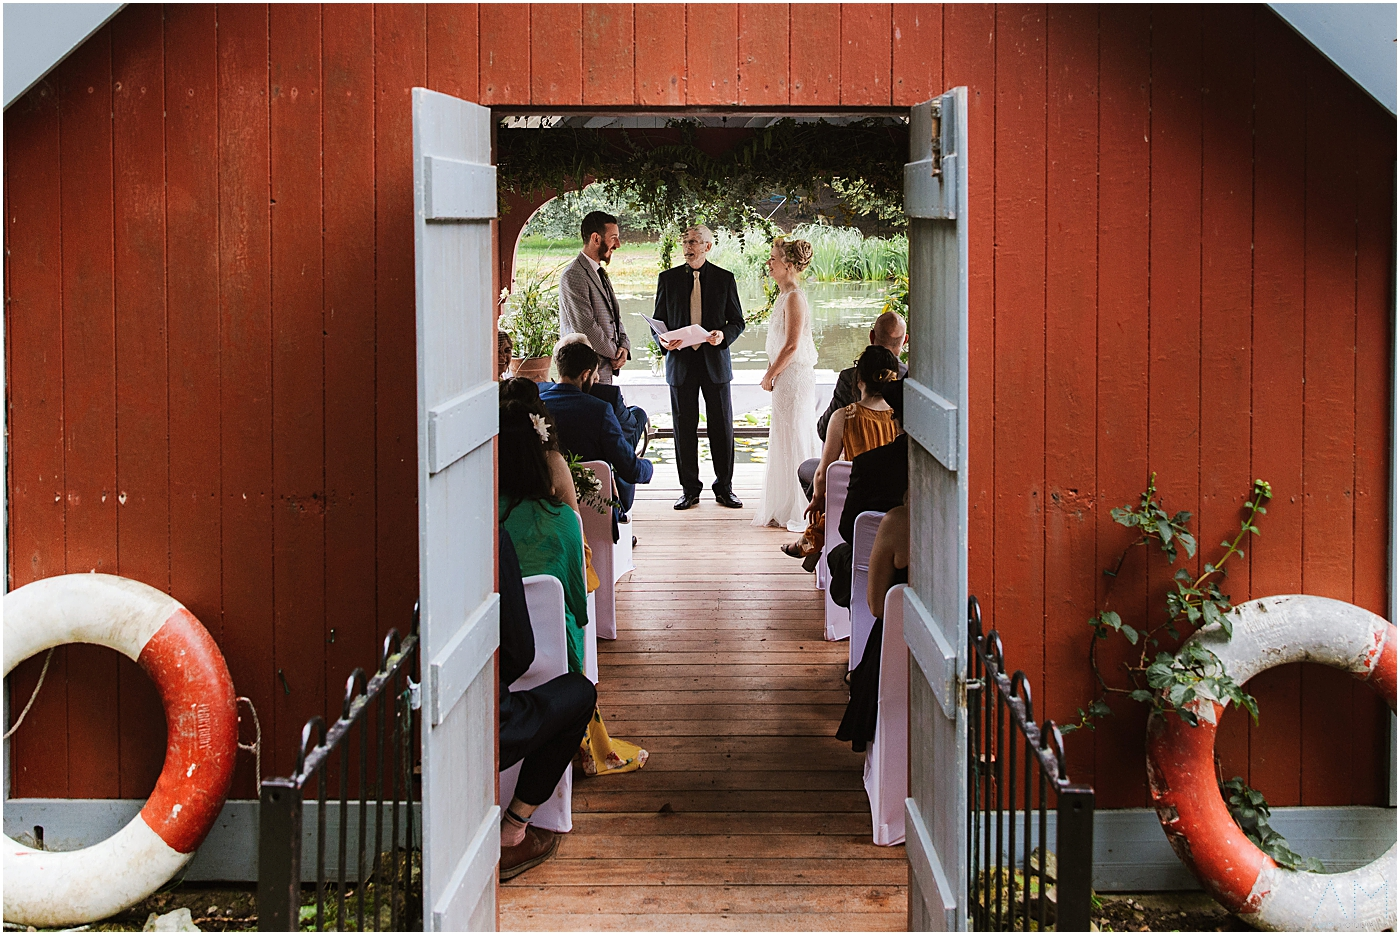 Married in the boat house at Carreglwyd